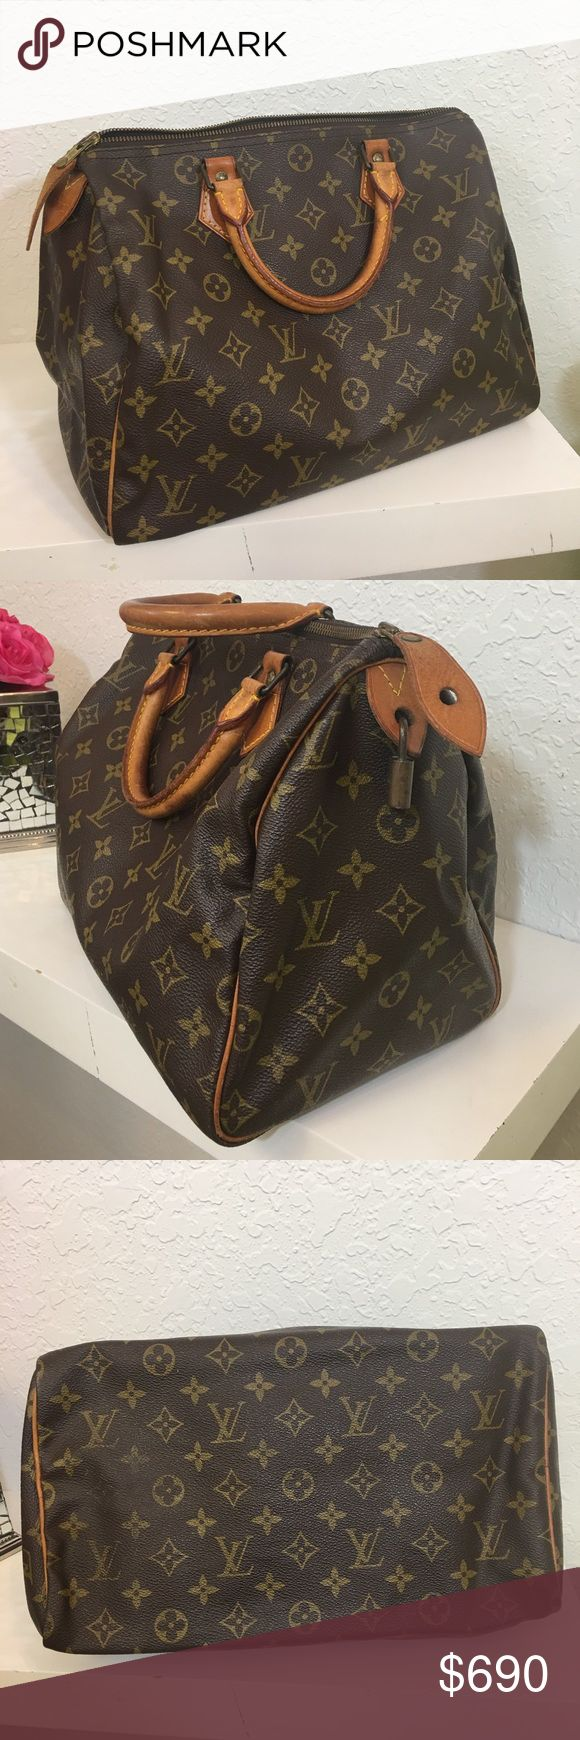 "Nice Louis Vuitton Speedy 30 Handbag Price is Firm✅ No Trade Closet ✅This authentic Speedy 30 vintage is in close to excellent condition!  1980's Monogrammed canvas is in close to excellent condition. See all photos close up. Clean, no smells, tears, or stains. Shows some signs of age on in inside pocket. Measurements: 12"" length.  Has working Key to lock. No papers. Feel free please to take to your local LV store also. They don't give papers but may validate for you also. Comes with dustbag…"